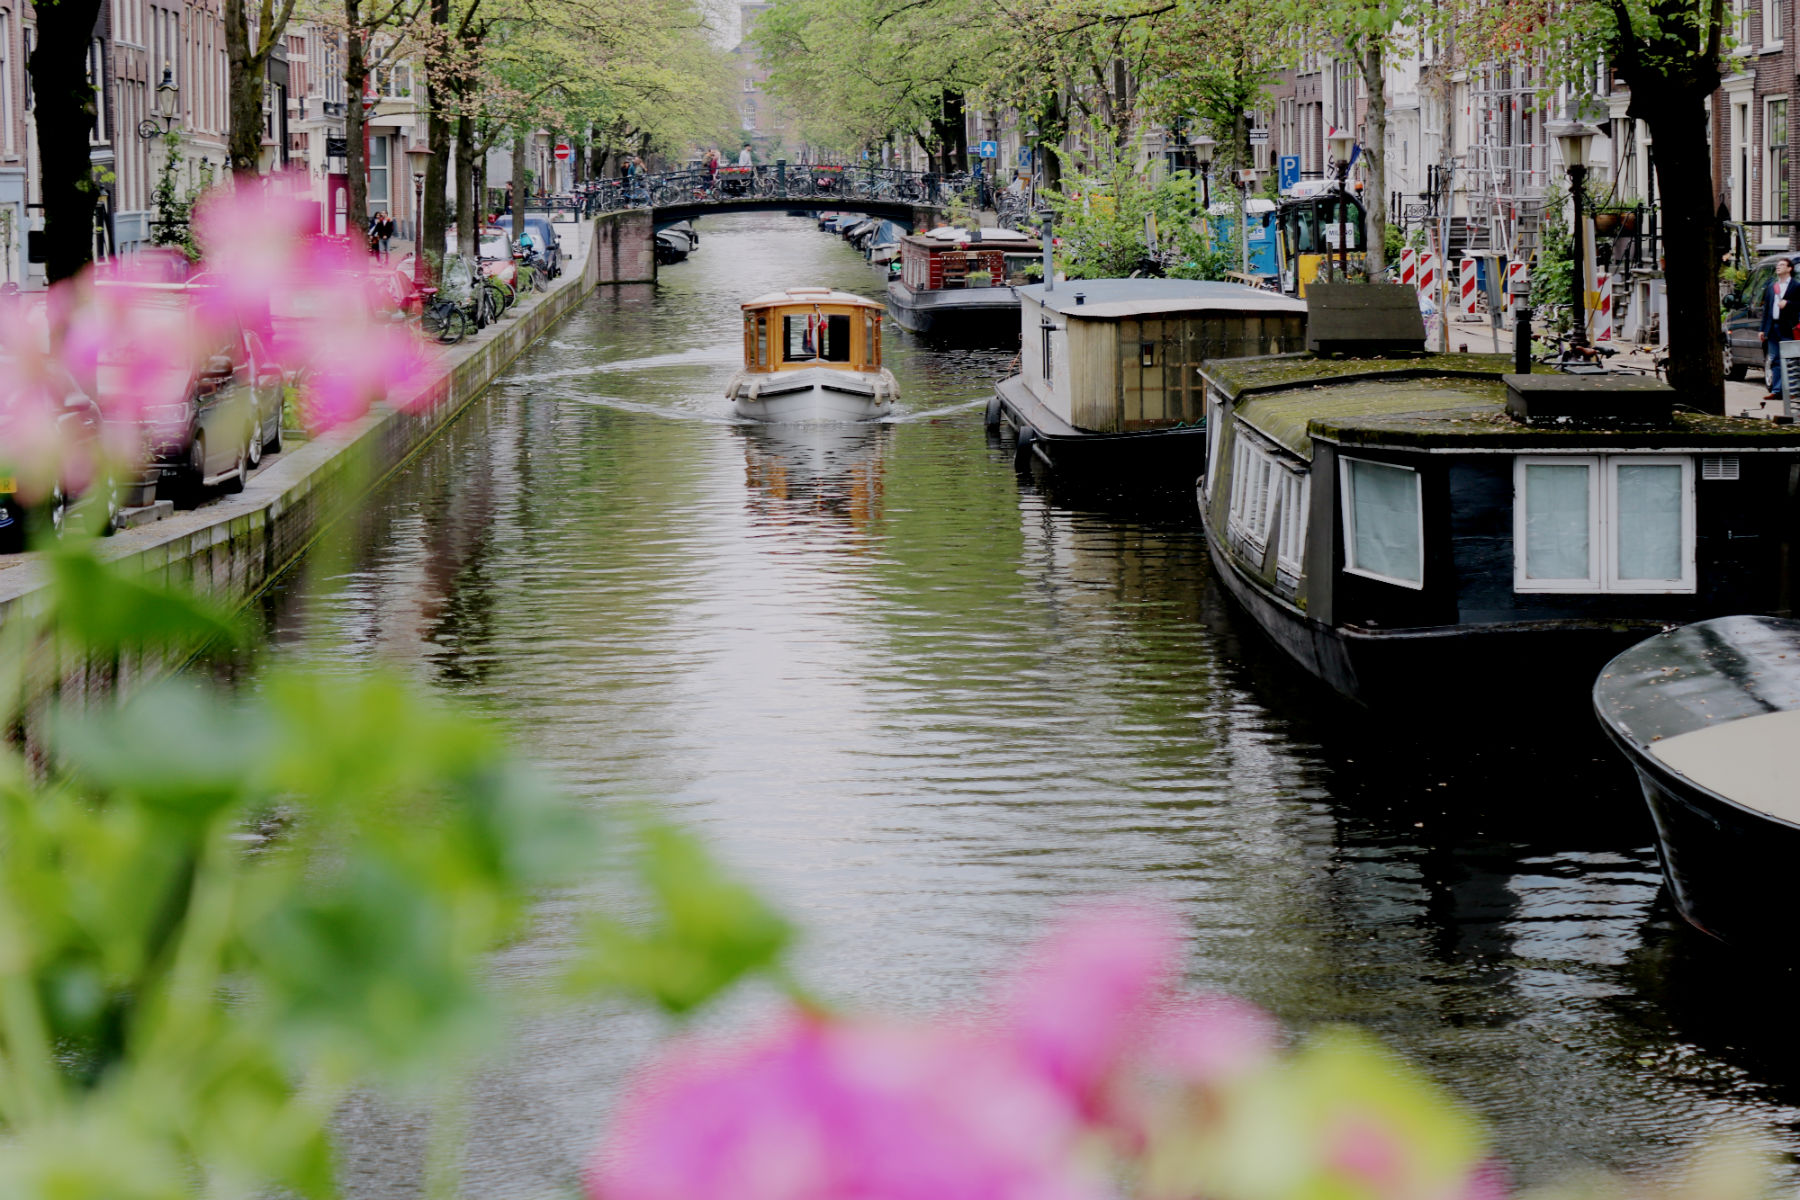 Boat on Amsterdam canal and flowers in the foreground